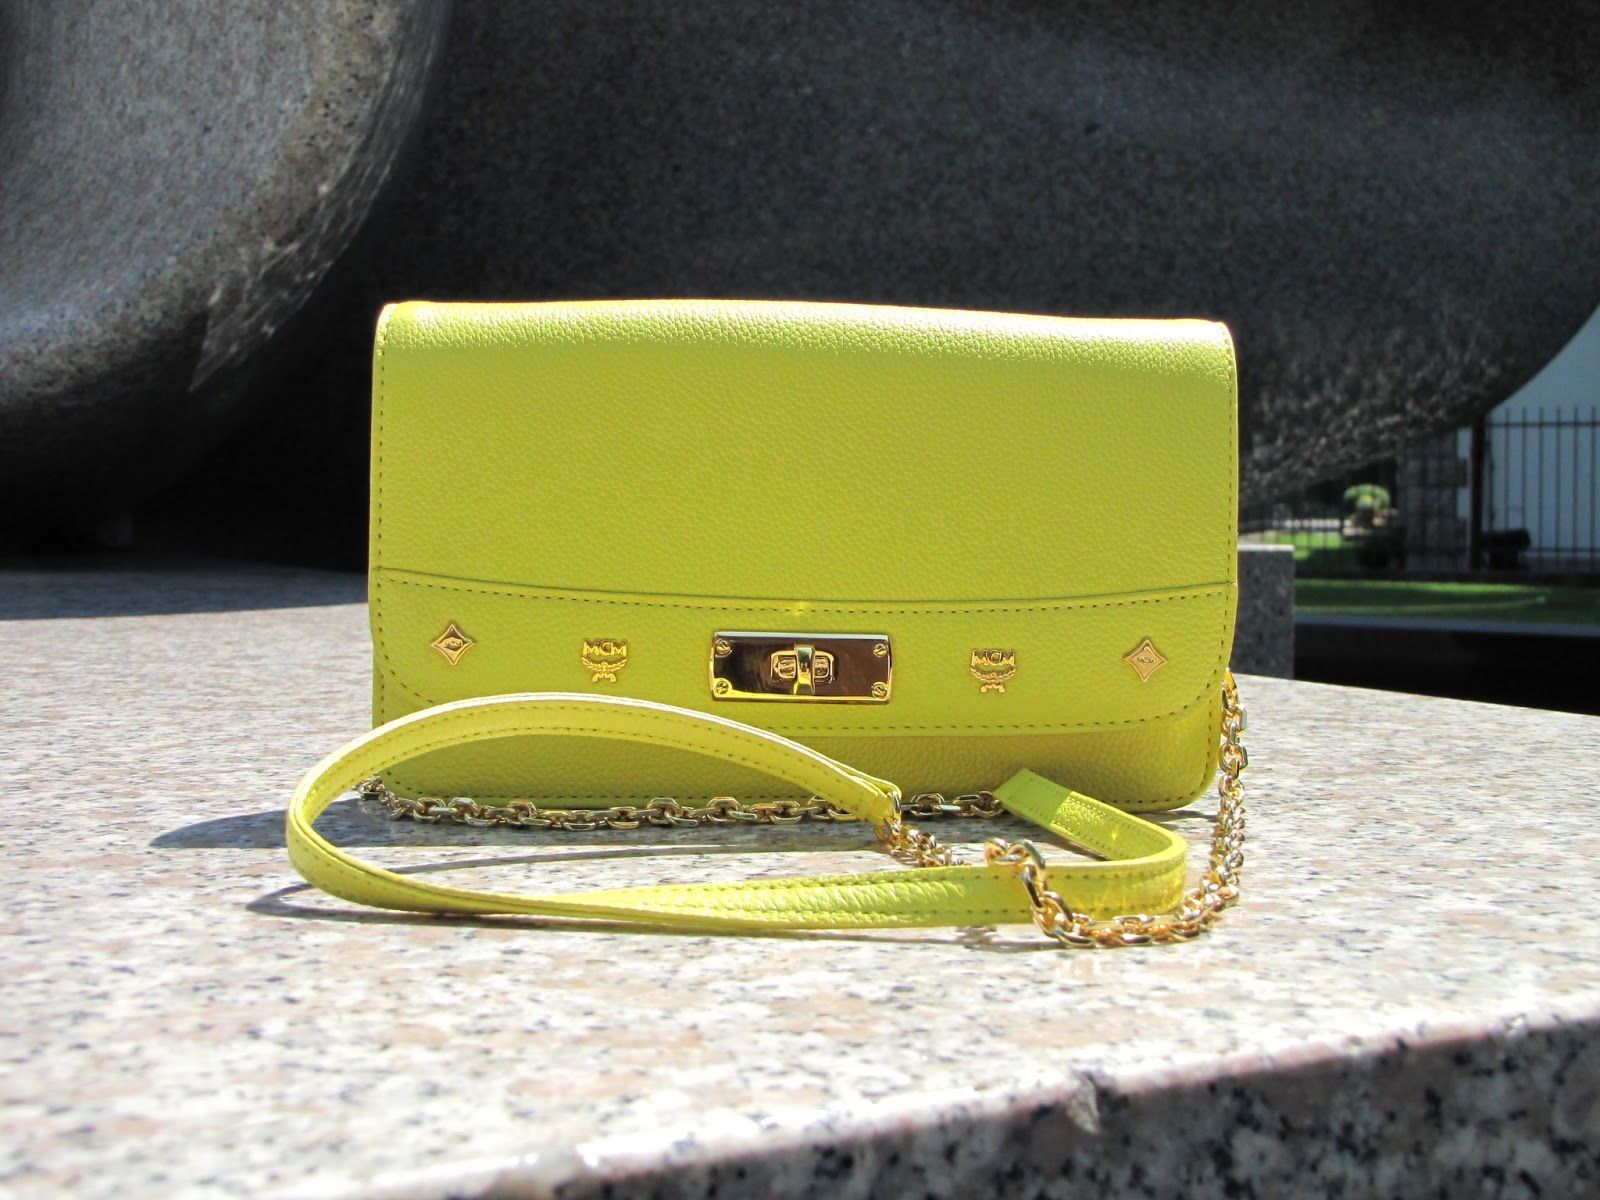 MCM bag, yellow bag, MCM Lady Crossbody Wallet Large Yellow